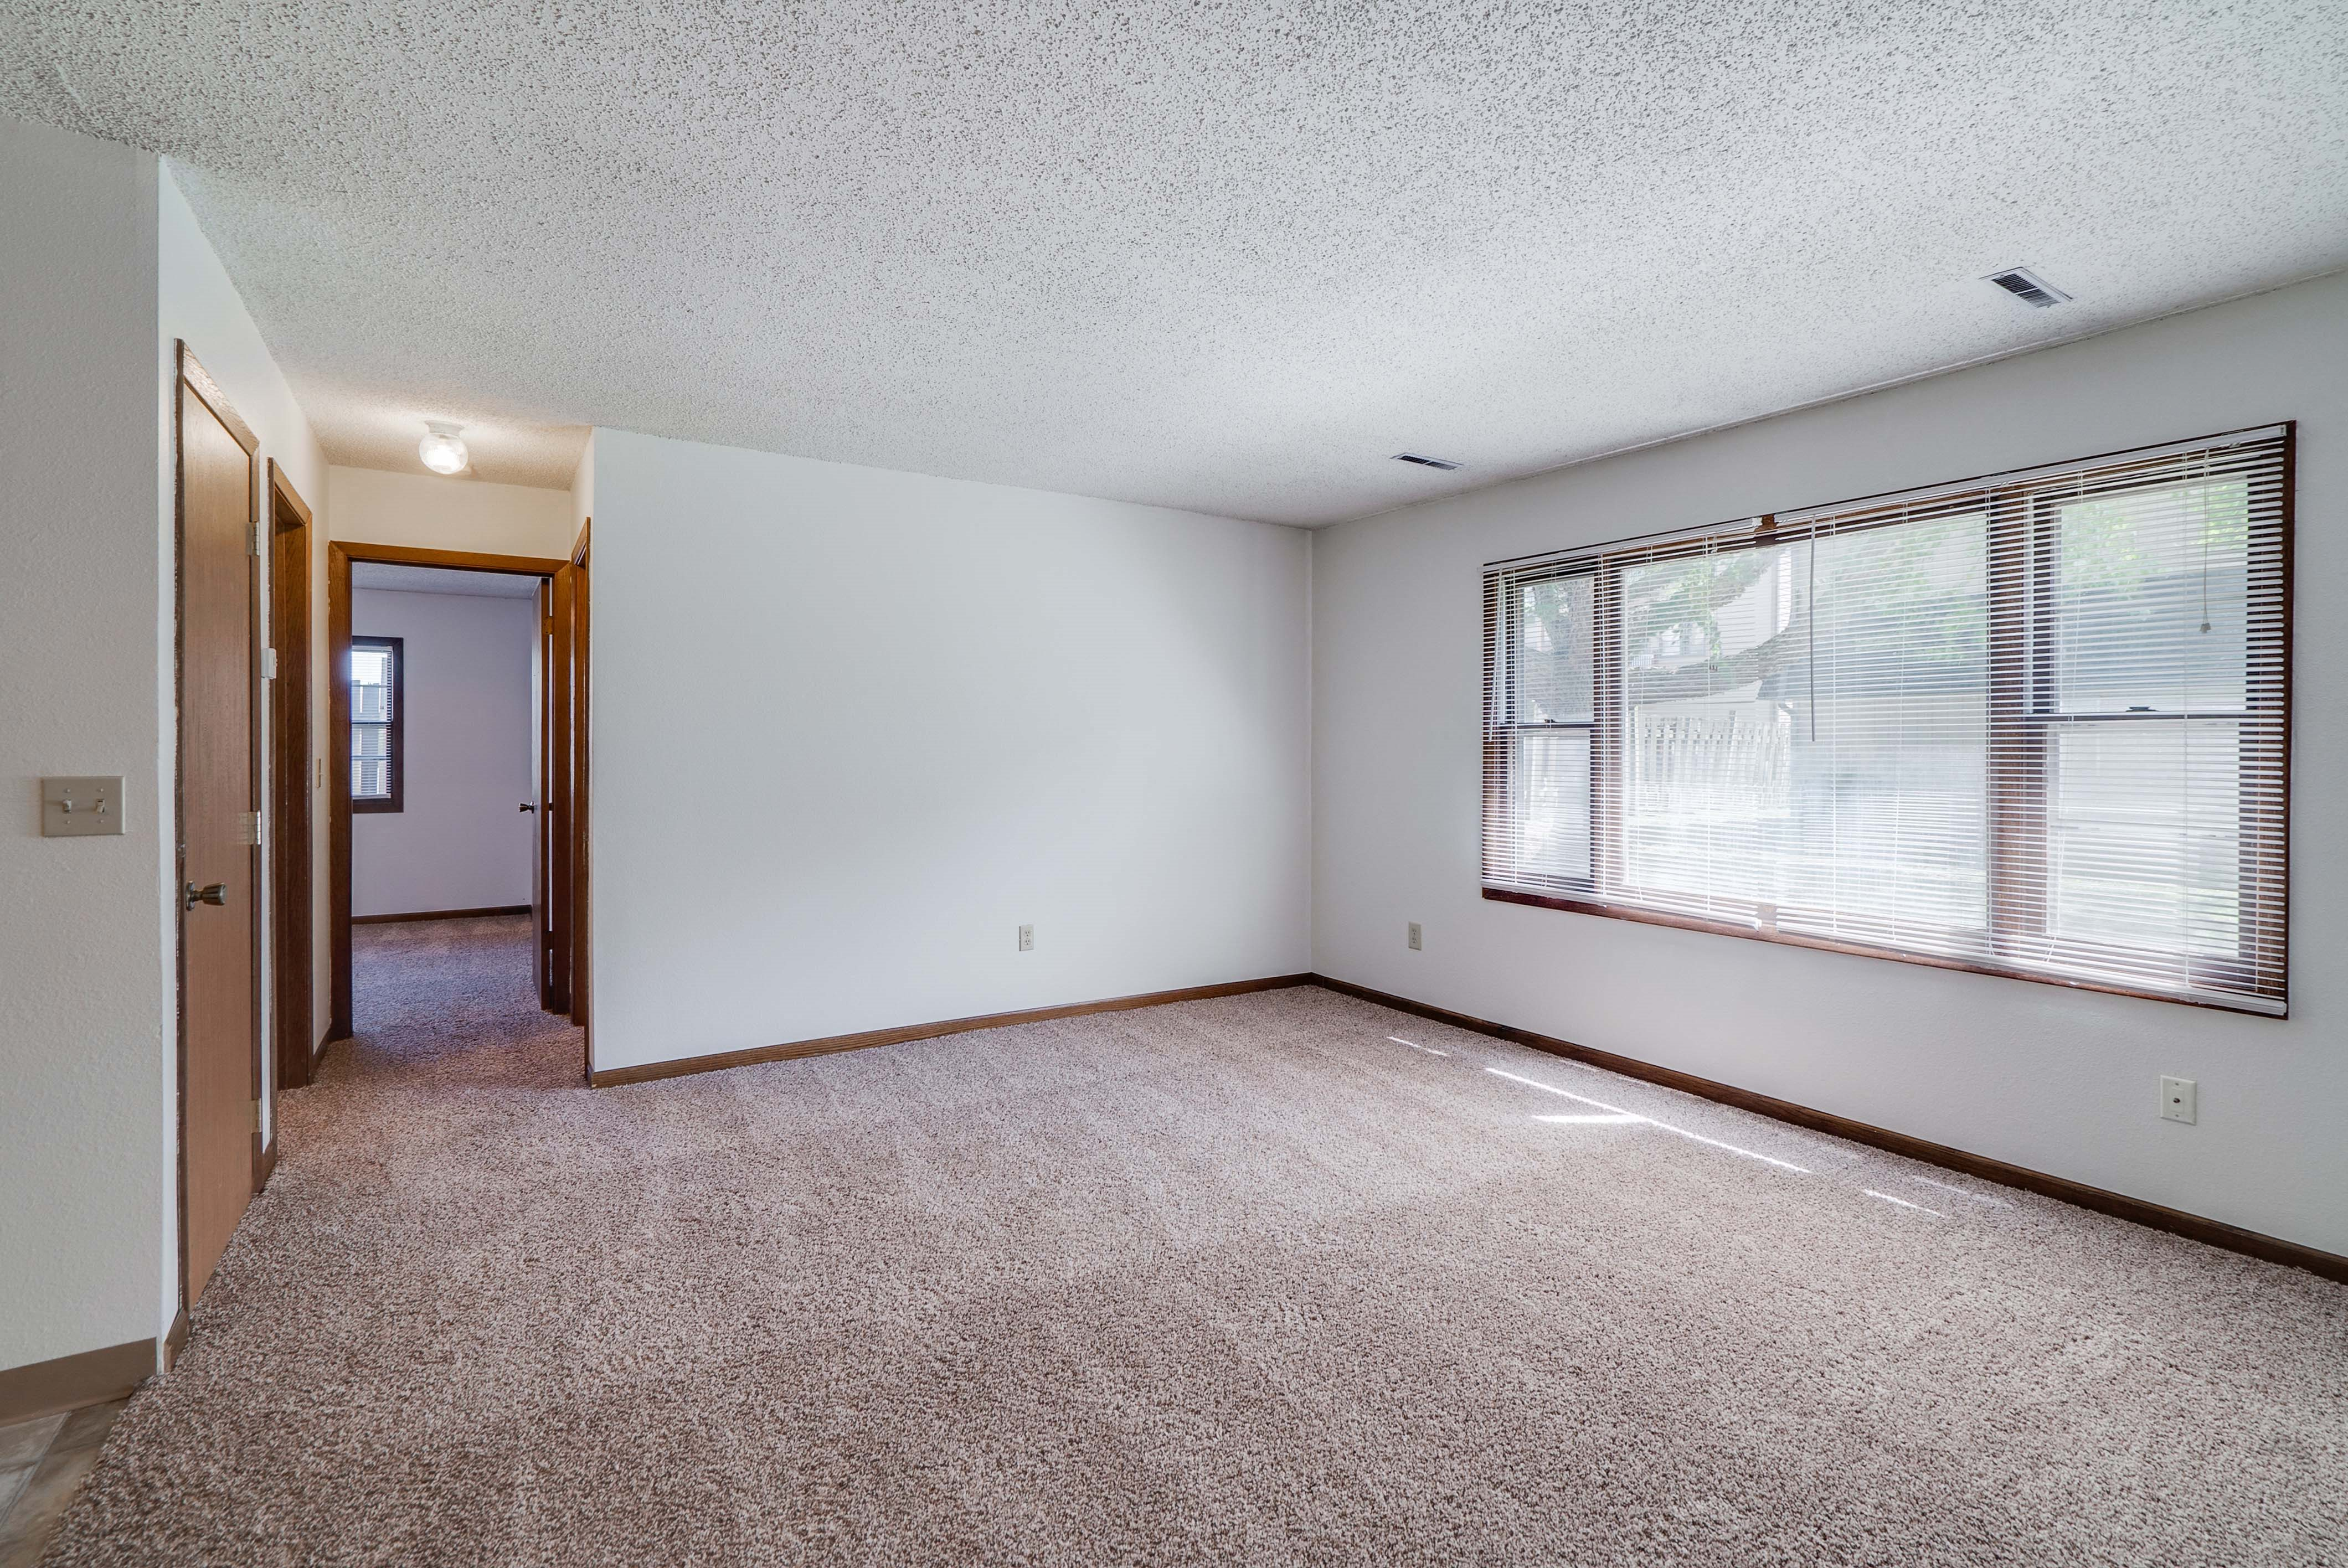 Living space with large windows providing lots of natural light at South View Apartments